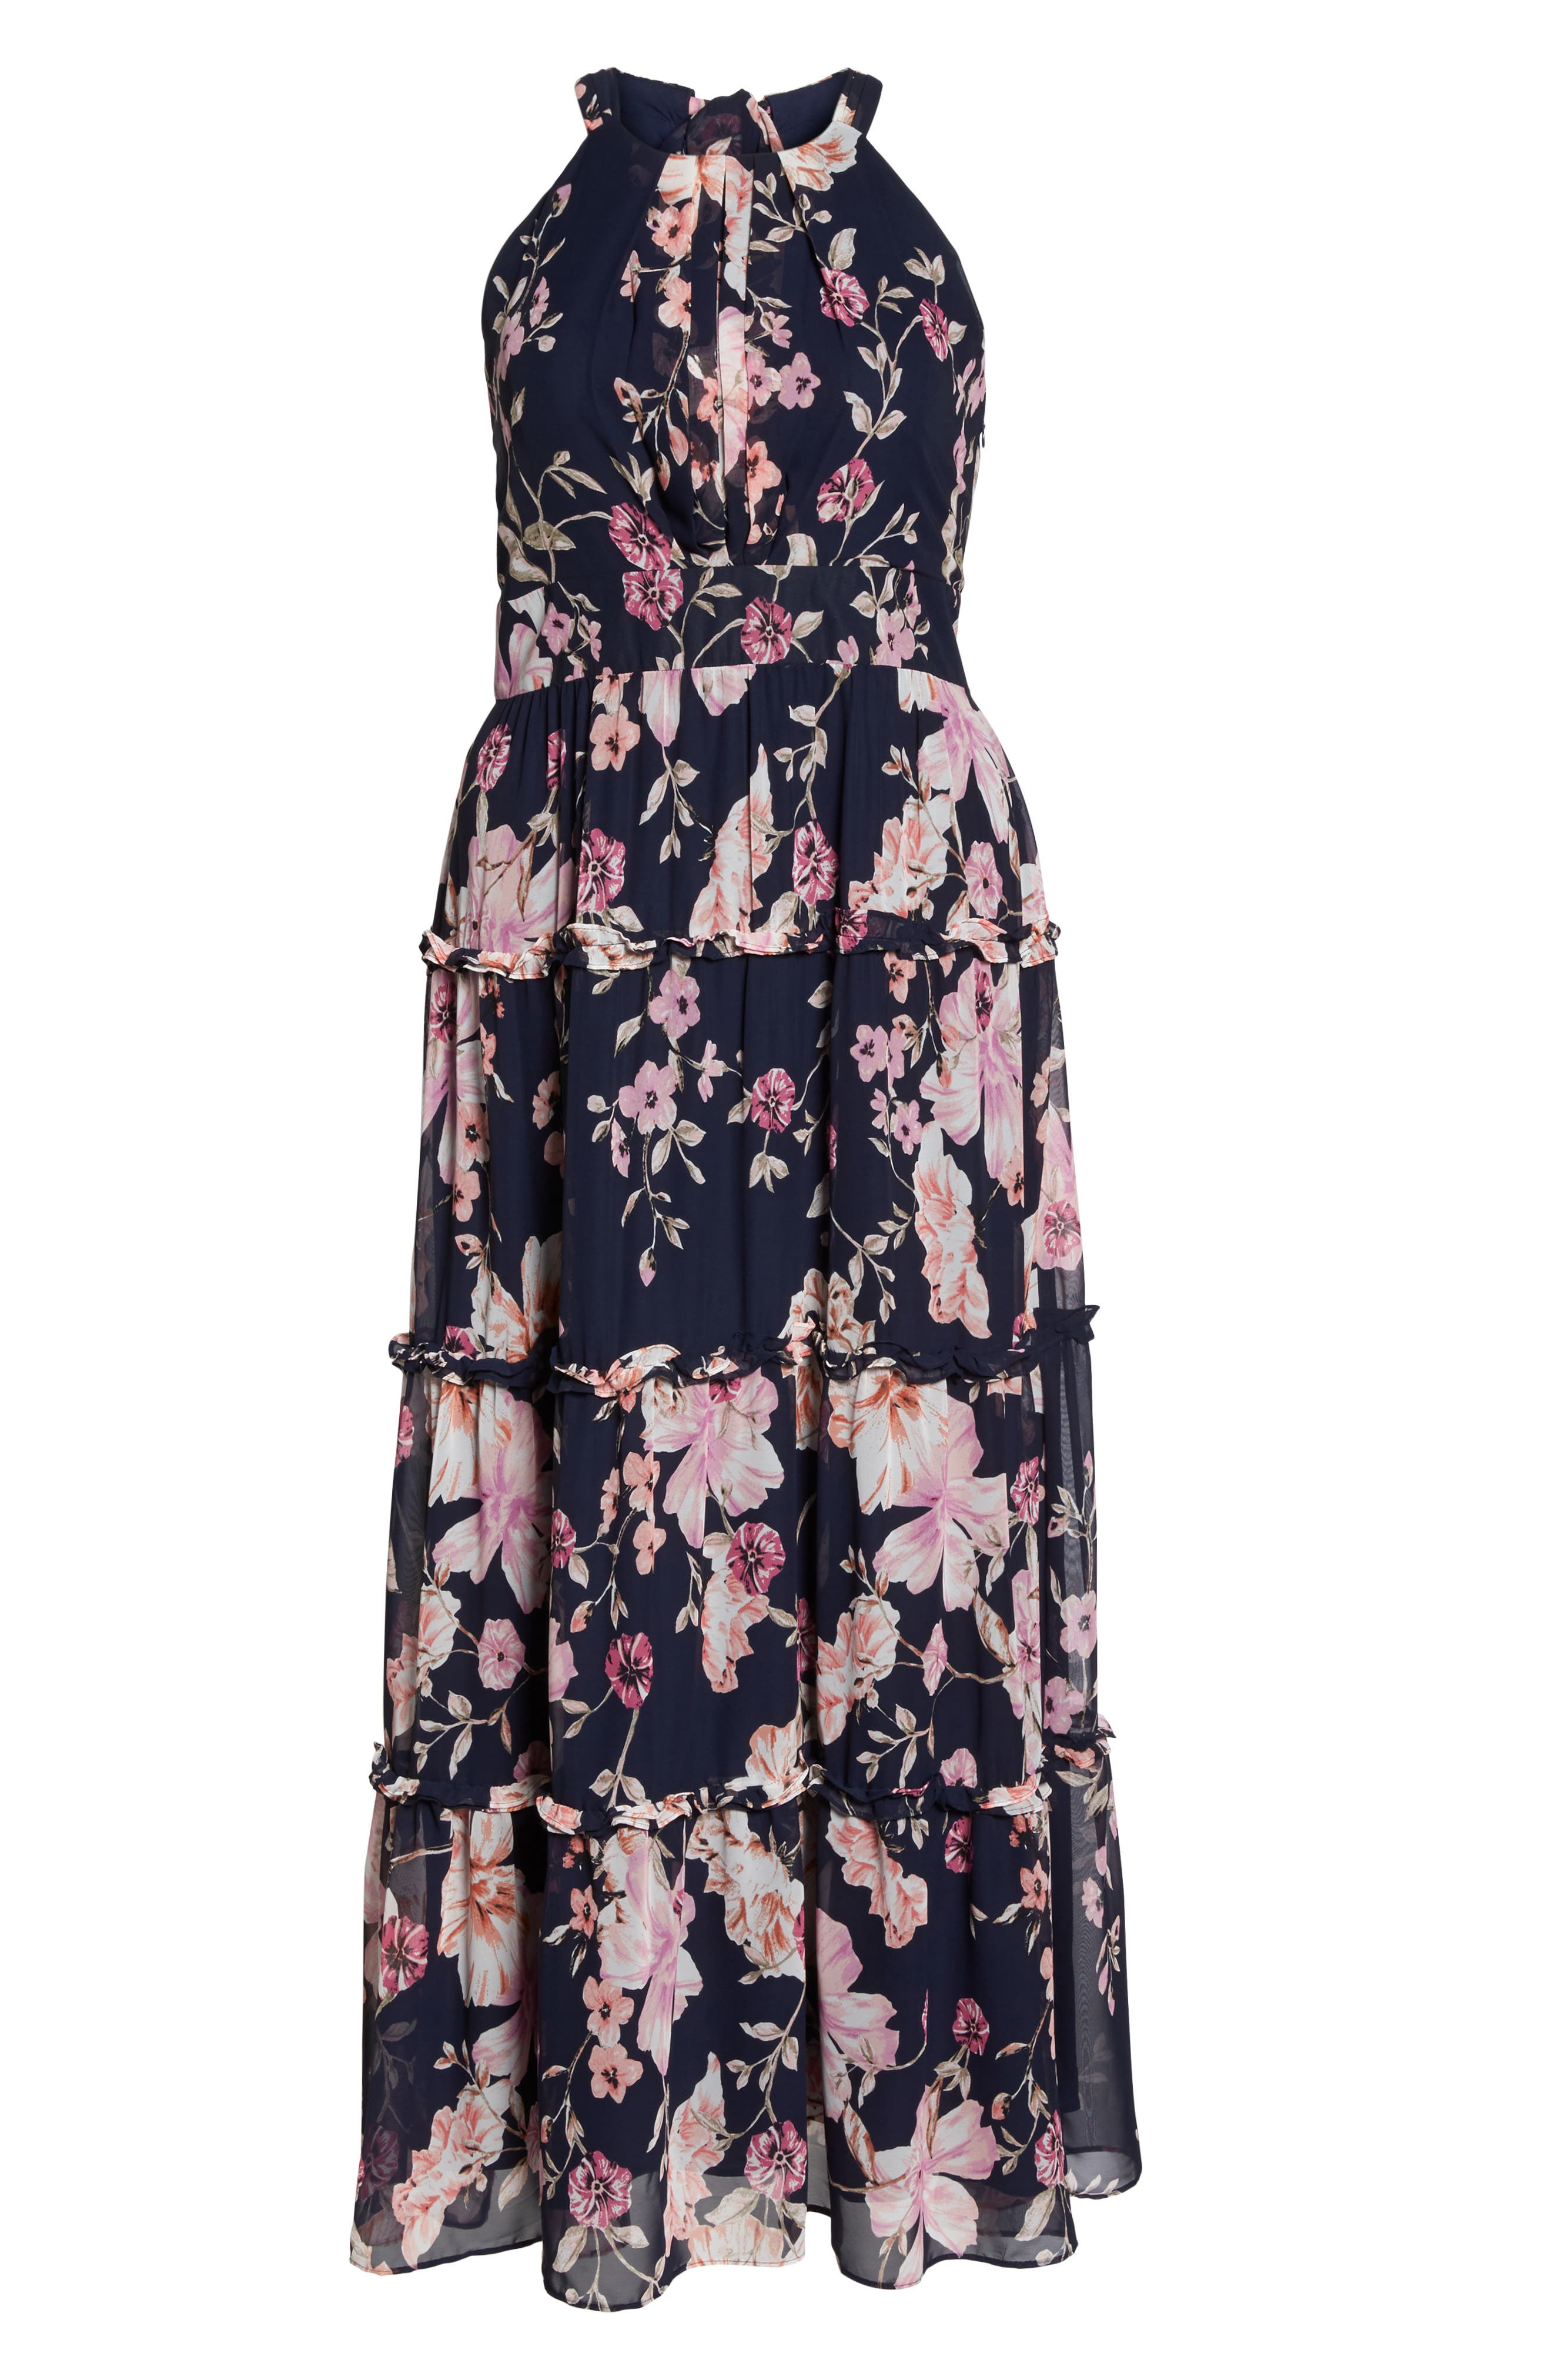 Floral Ruffle Trim Chiffon Halter Maxi Dress,                             Alternate thumbnail 6, color,                             410